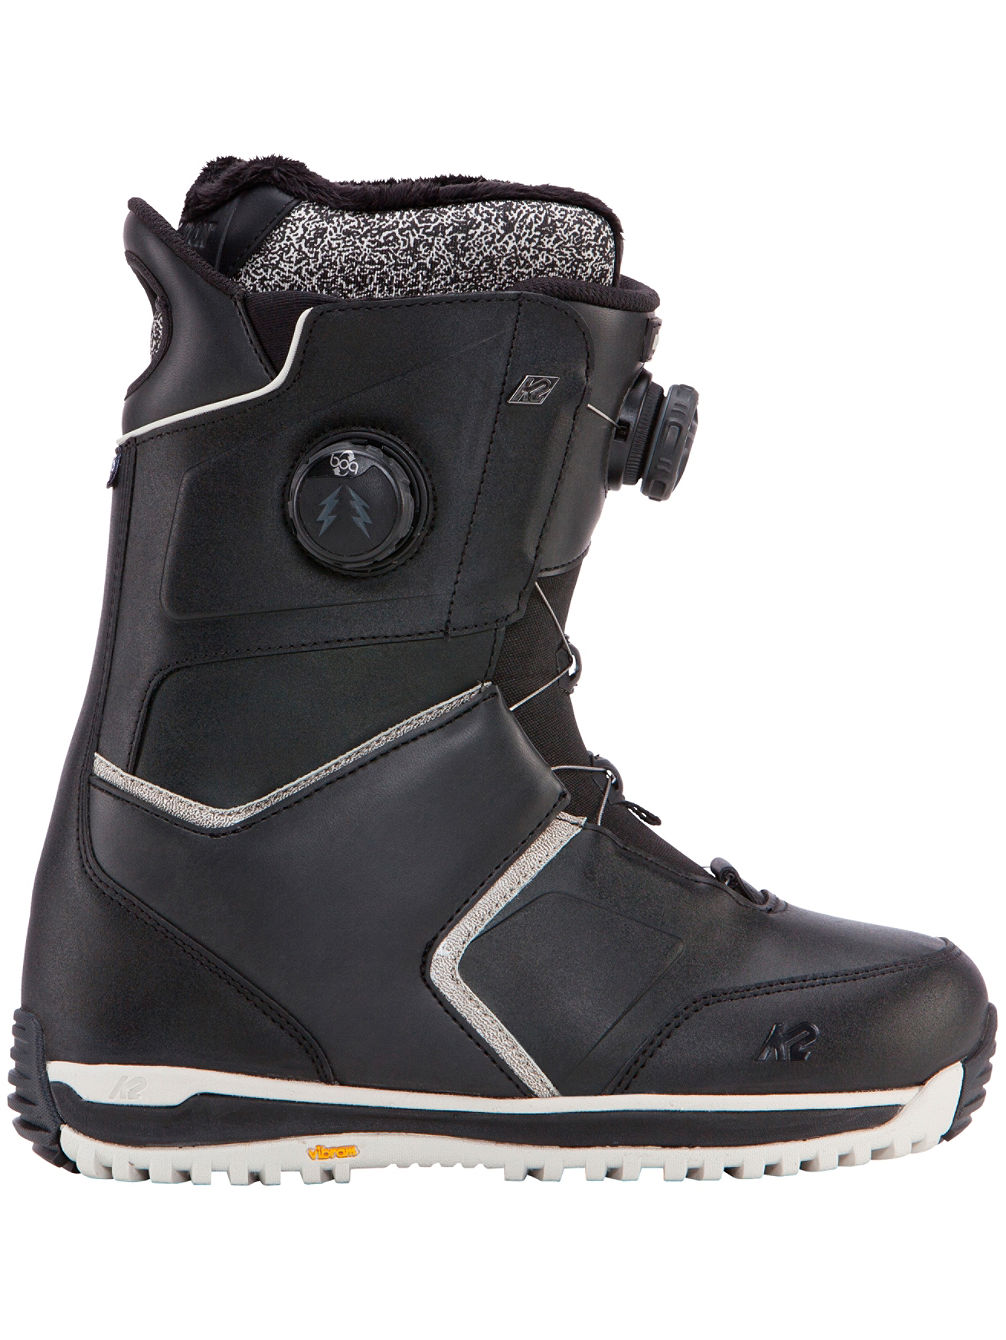 Estate 2018 Snowboardboots